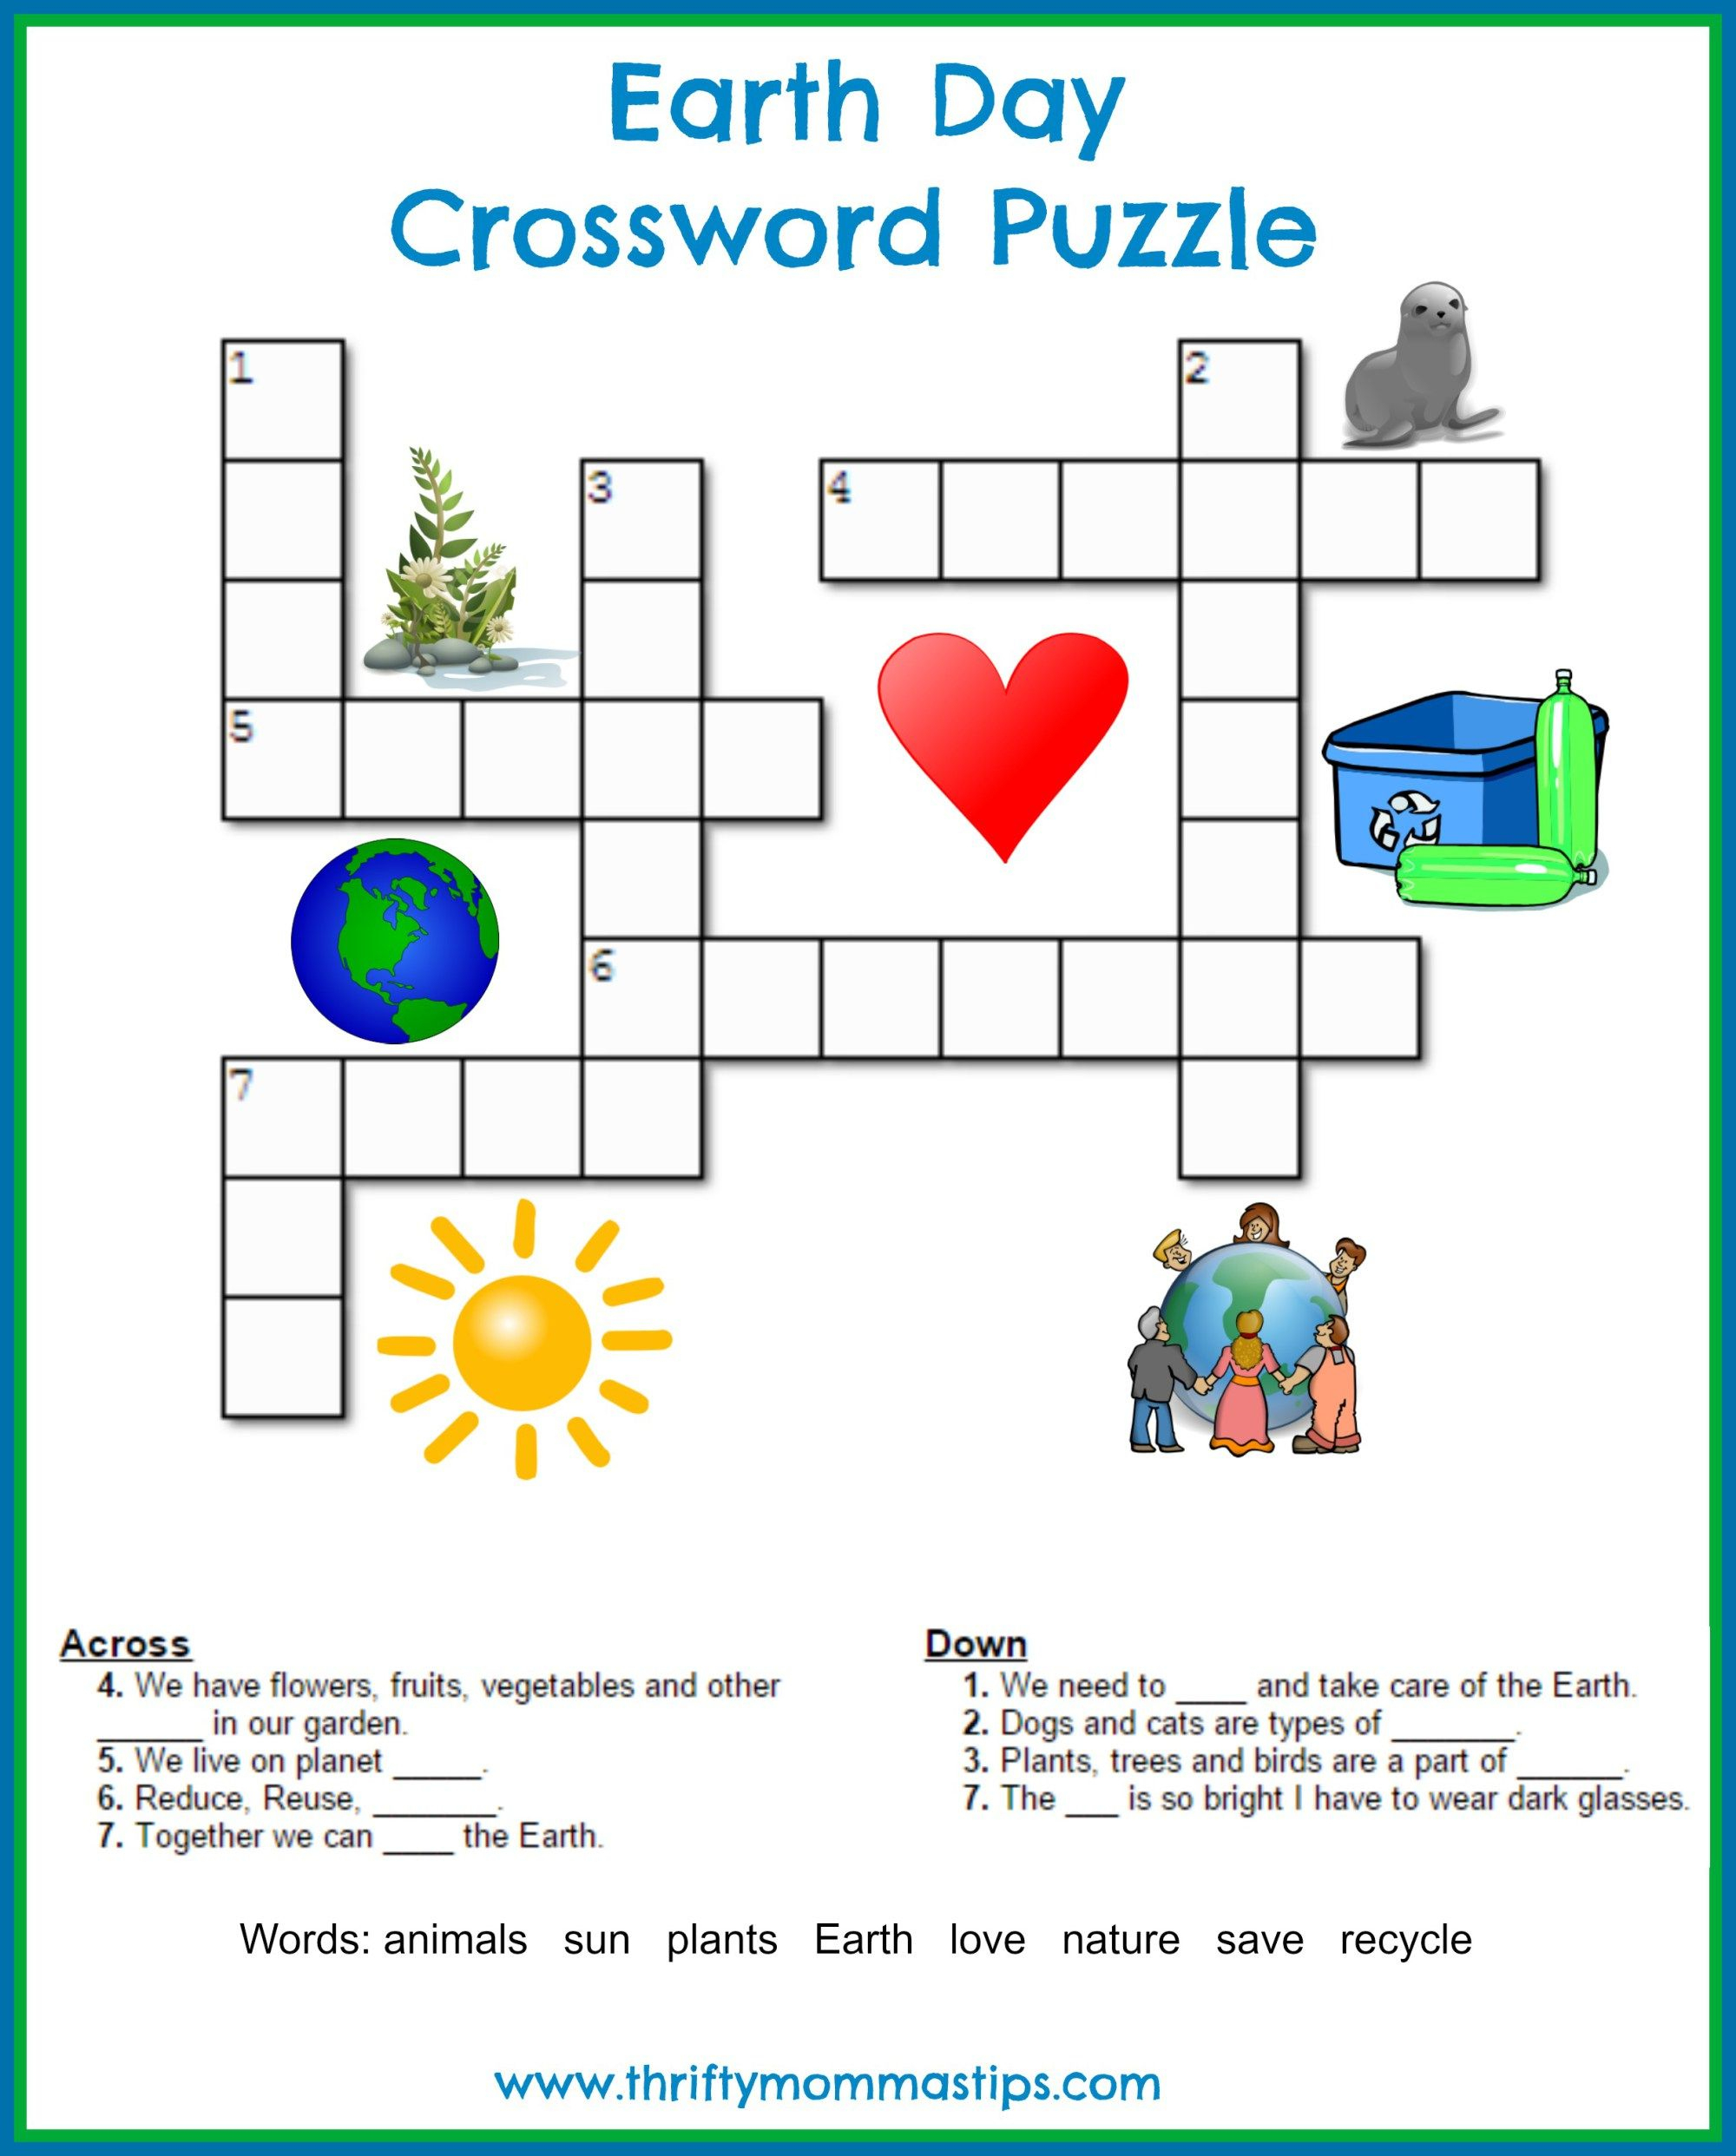 Earth Day Crossword Puzzle | Earth Day | Printable Crossword Puzzles - Printable Crossword Of The Day